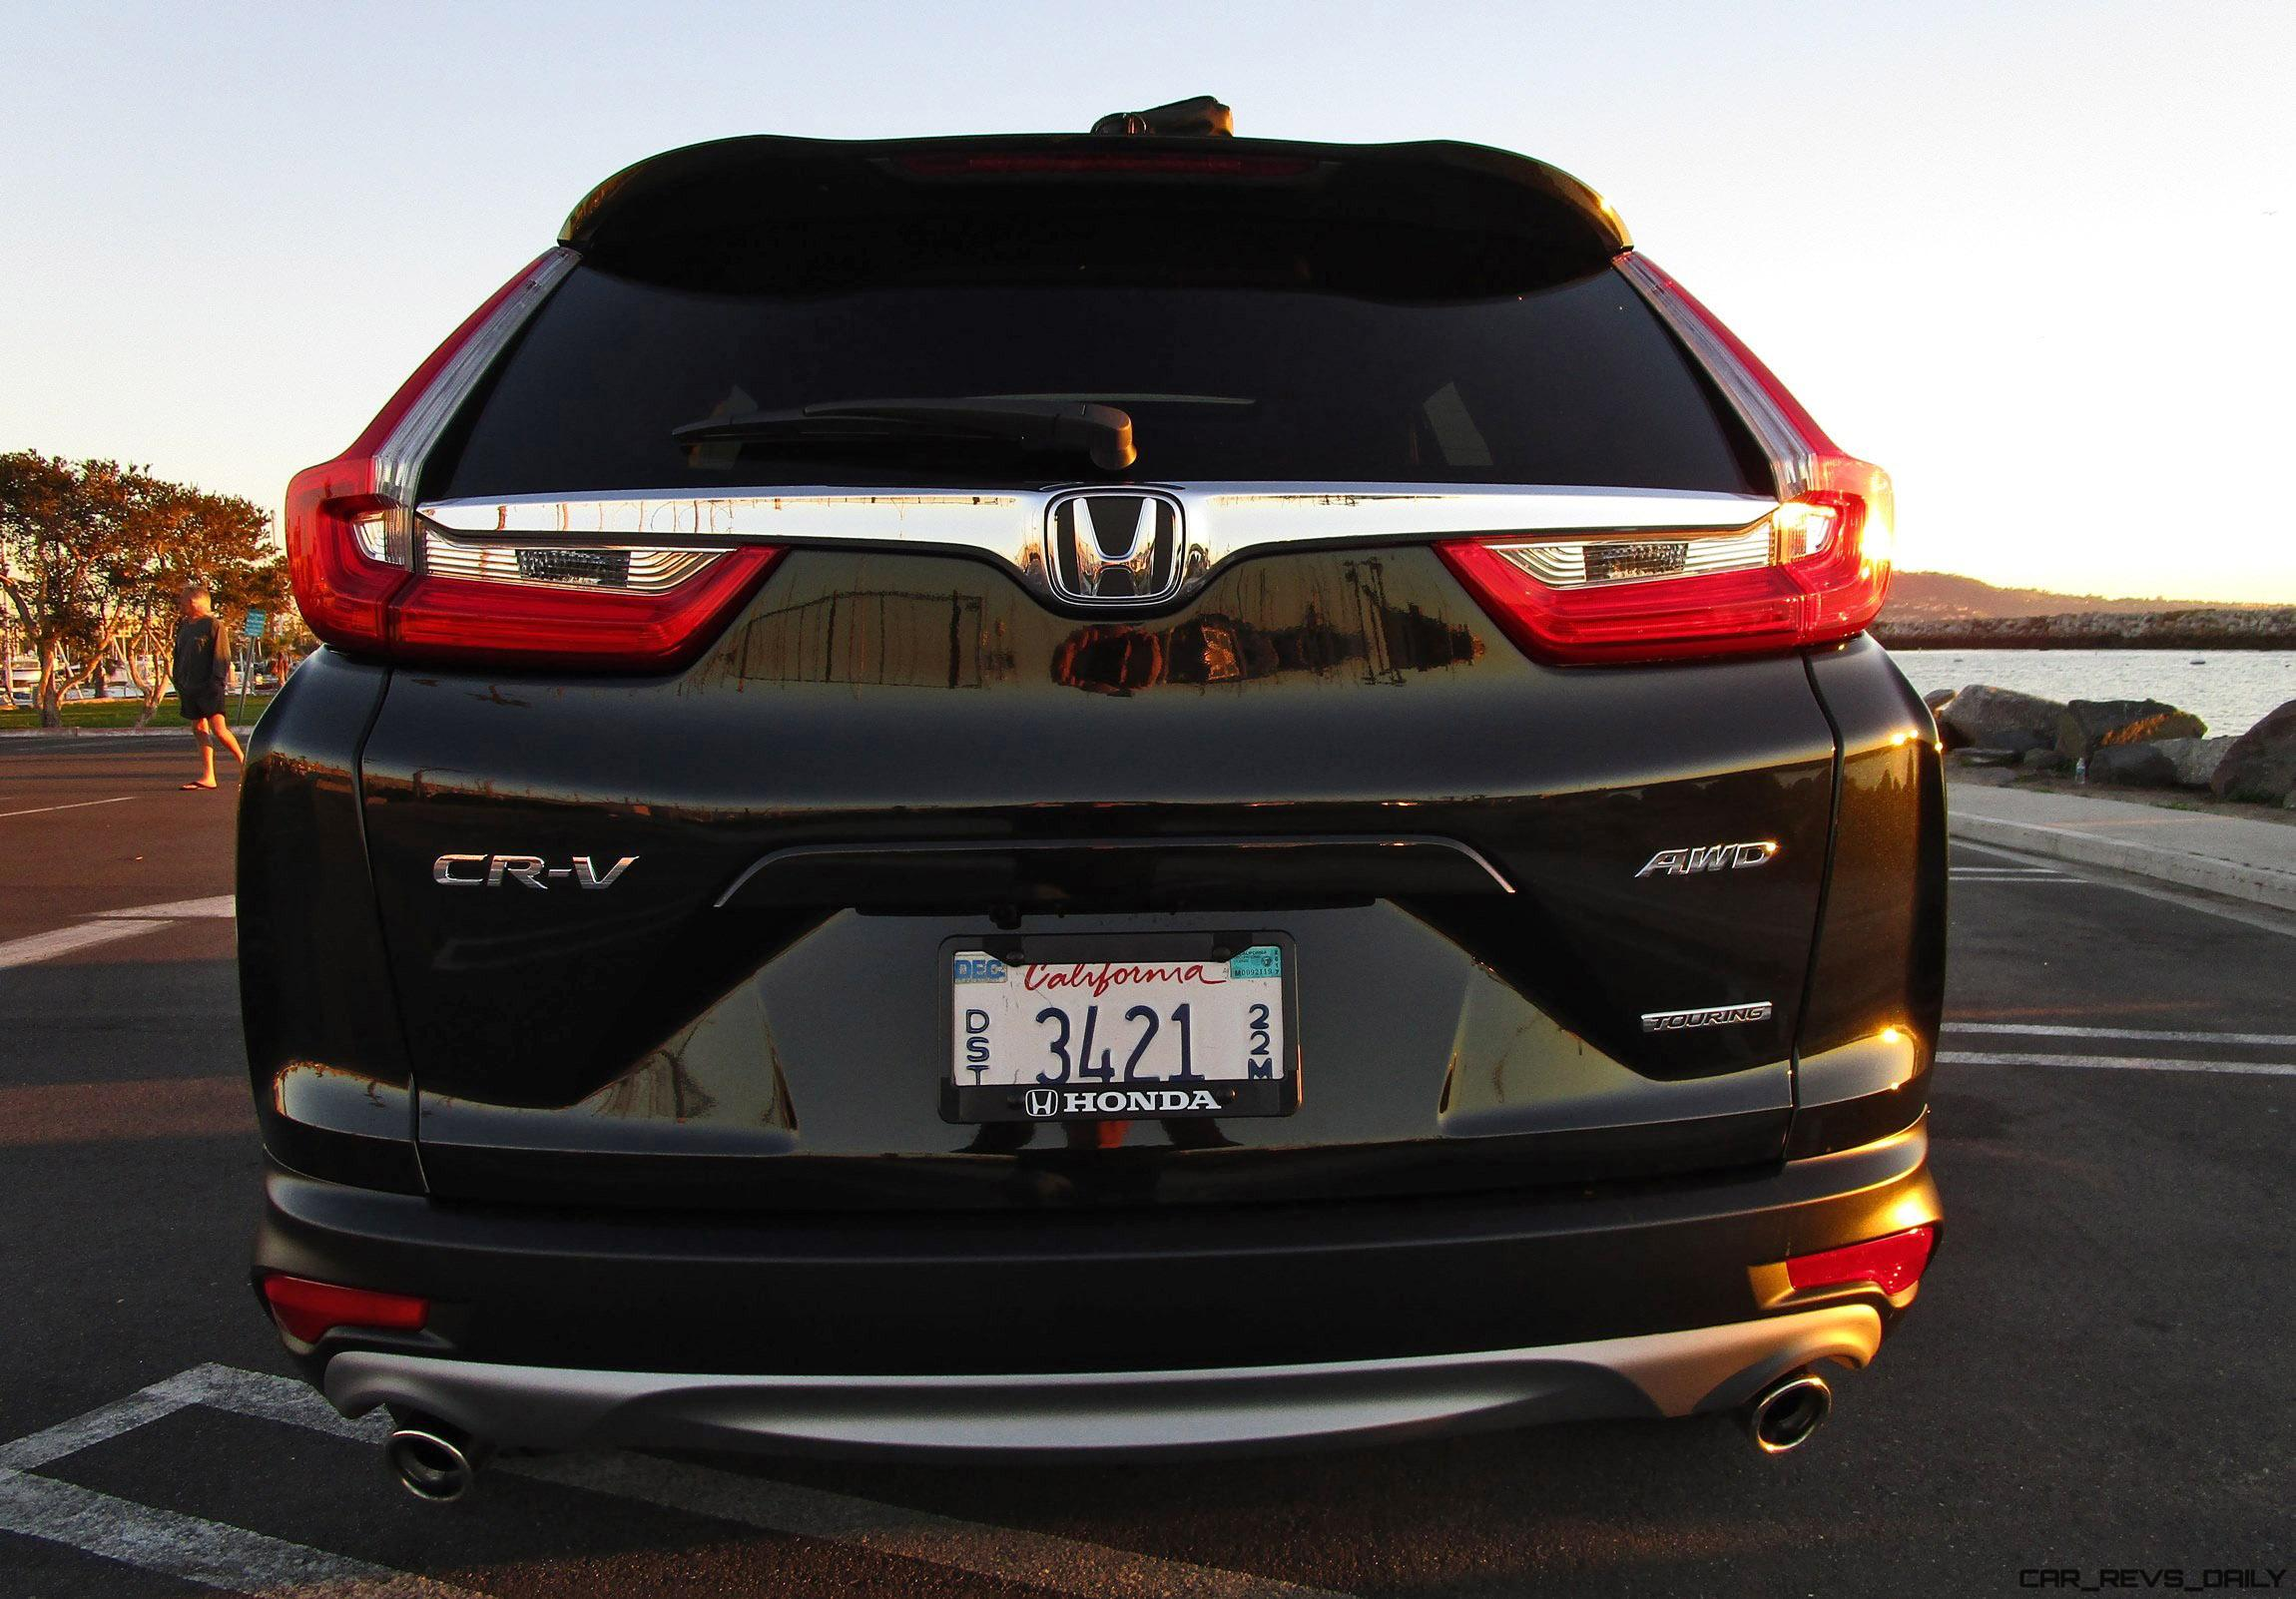 2017 honda cr v 1 5t awd touring road test review by ben lewis. Black Bedroom Furniture Sets. Home Design Ideas